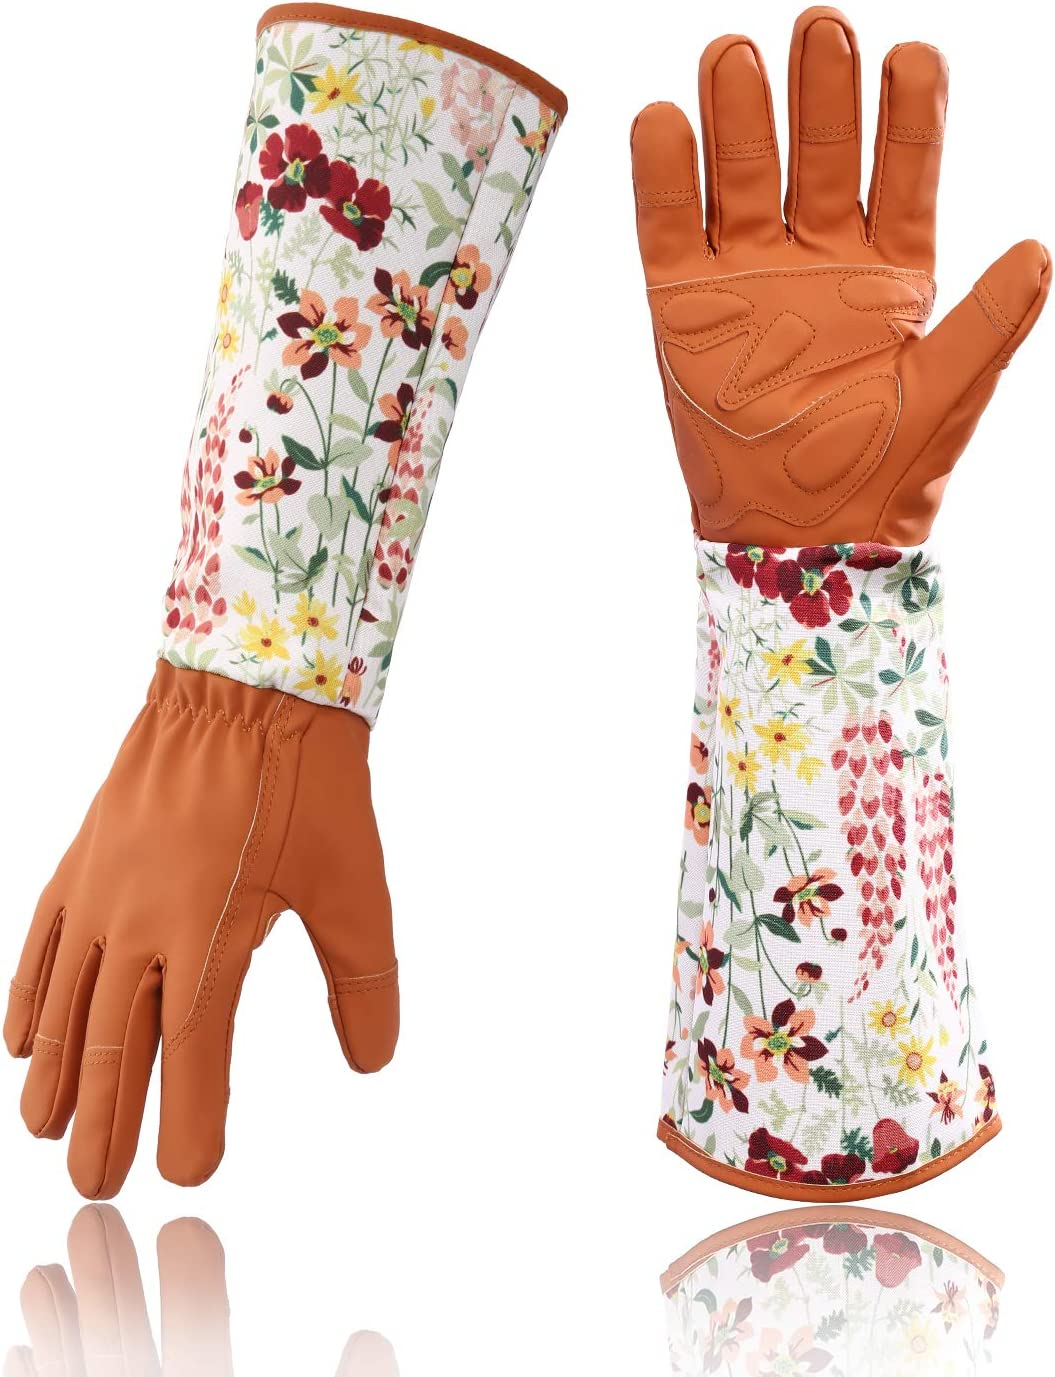 Geloo Women Professional Long Sleeve Trim Gardening Gloves, Garden Gloves (Brown)